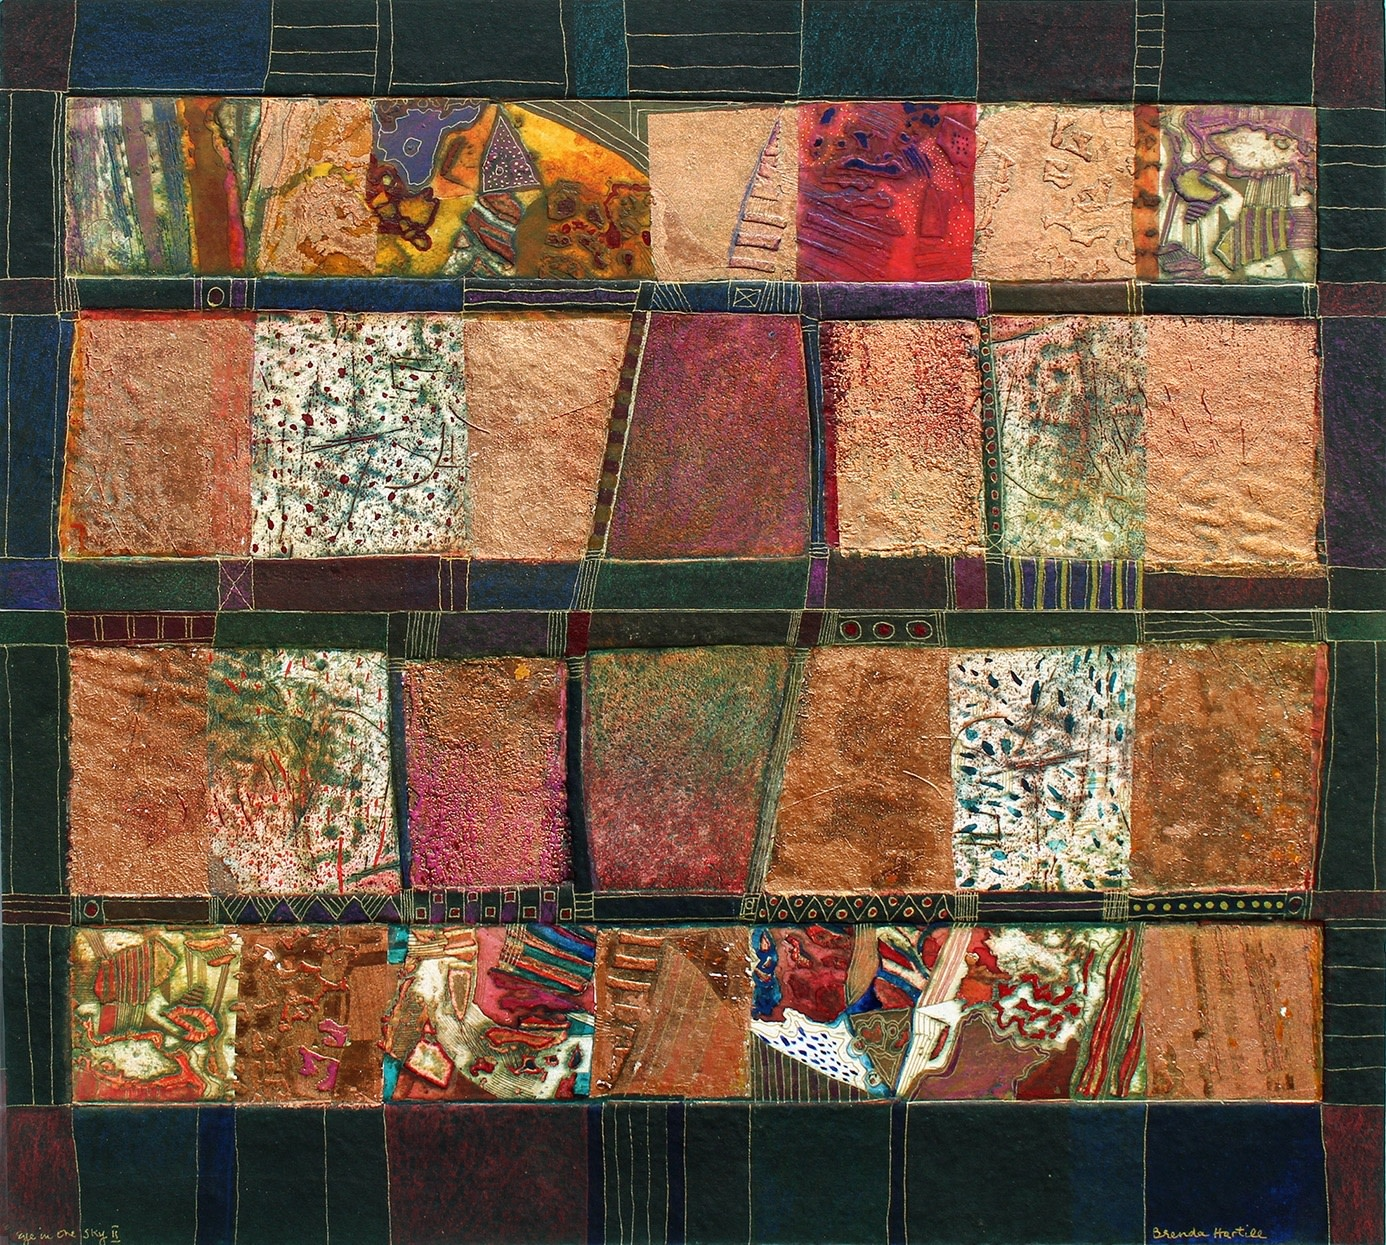 """<span class=""""link fancybox-details-link""""><a href=""""/exhibitions/17/works/image_standalone699/"""">View Detail Page</a></span><p><strong>Brenda Hartill</strong></p><p>Eye in the Sky II</p><p>waxed collaged etching with copper leaf and watercolour, unique</p><p>52 x 58cm</p><p>£1100 framed</p>"""